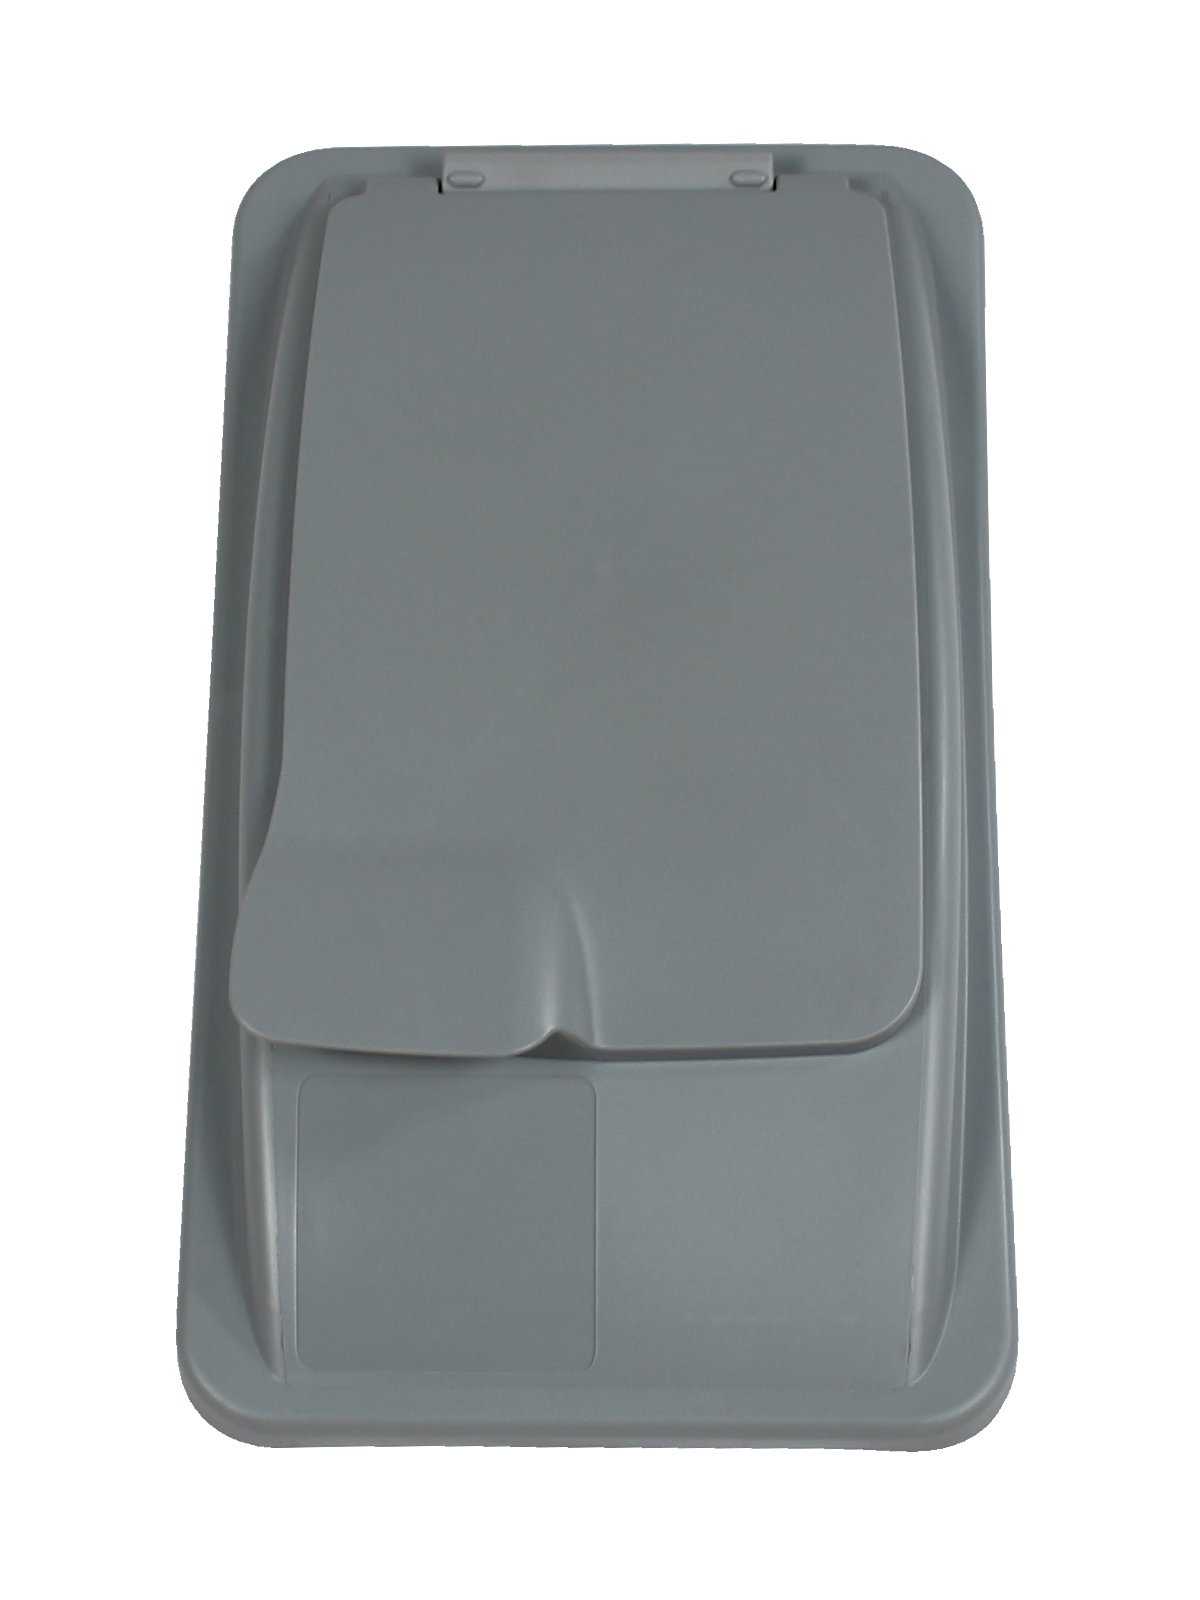 WASTE WATCHER - Lid - Solid Lift - Executive Grey